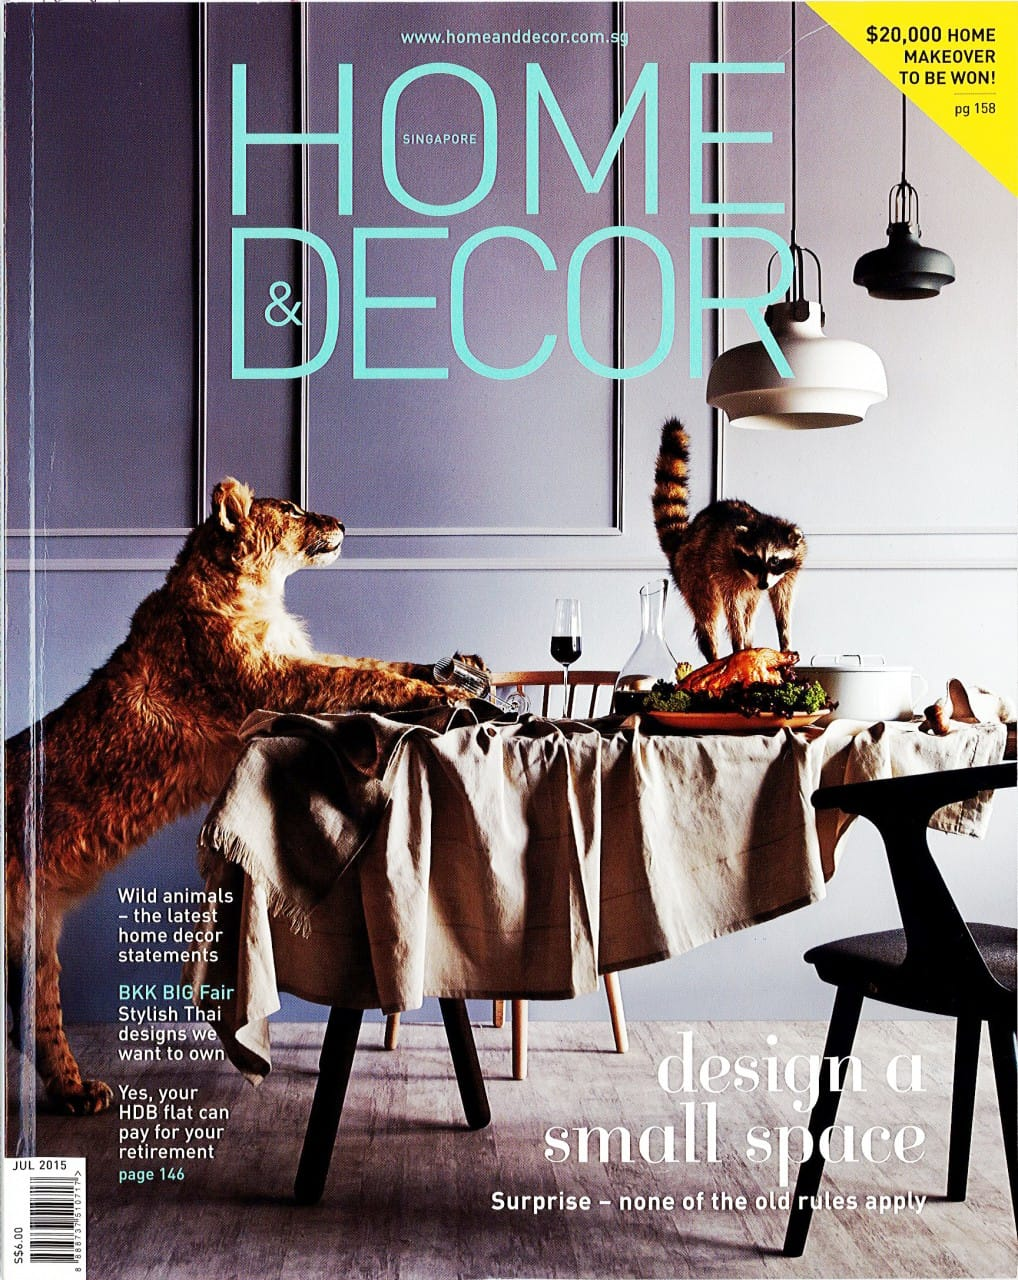 Home & Decor - July 2015 Issue